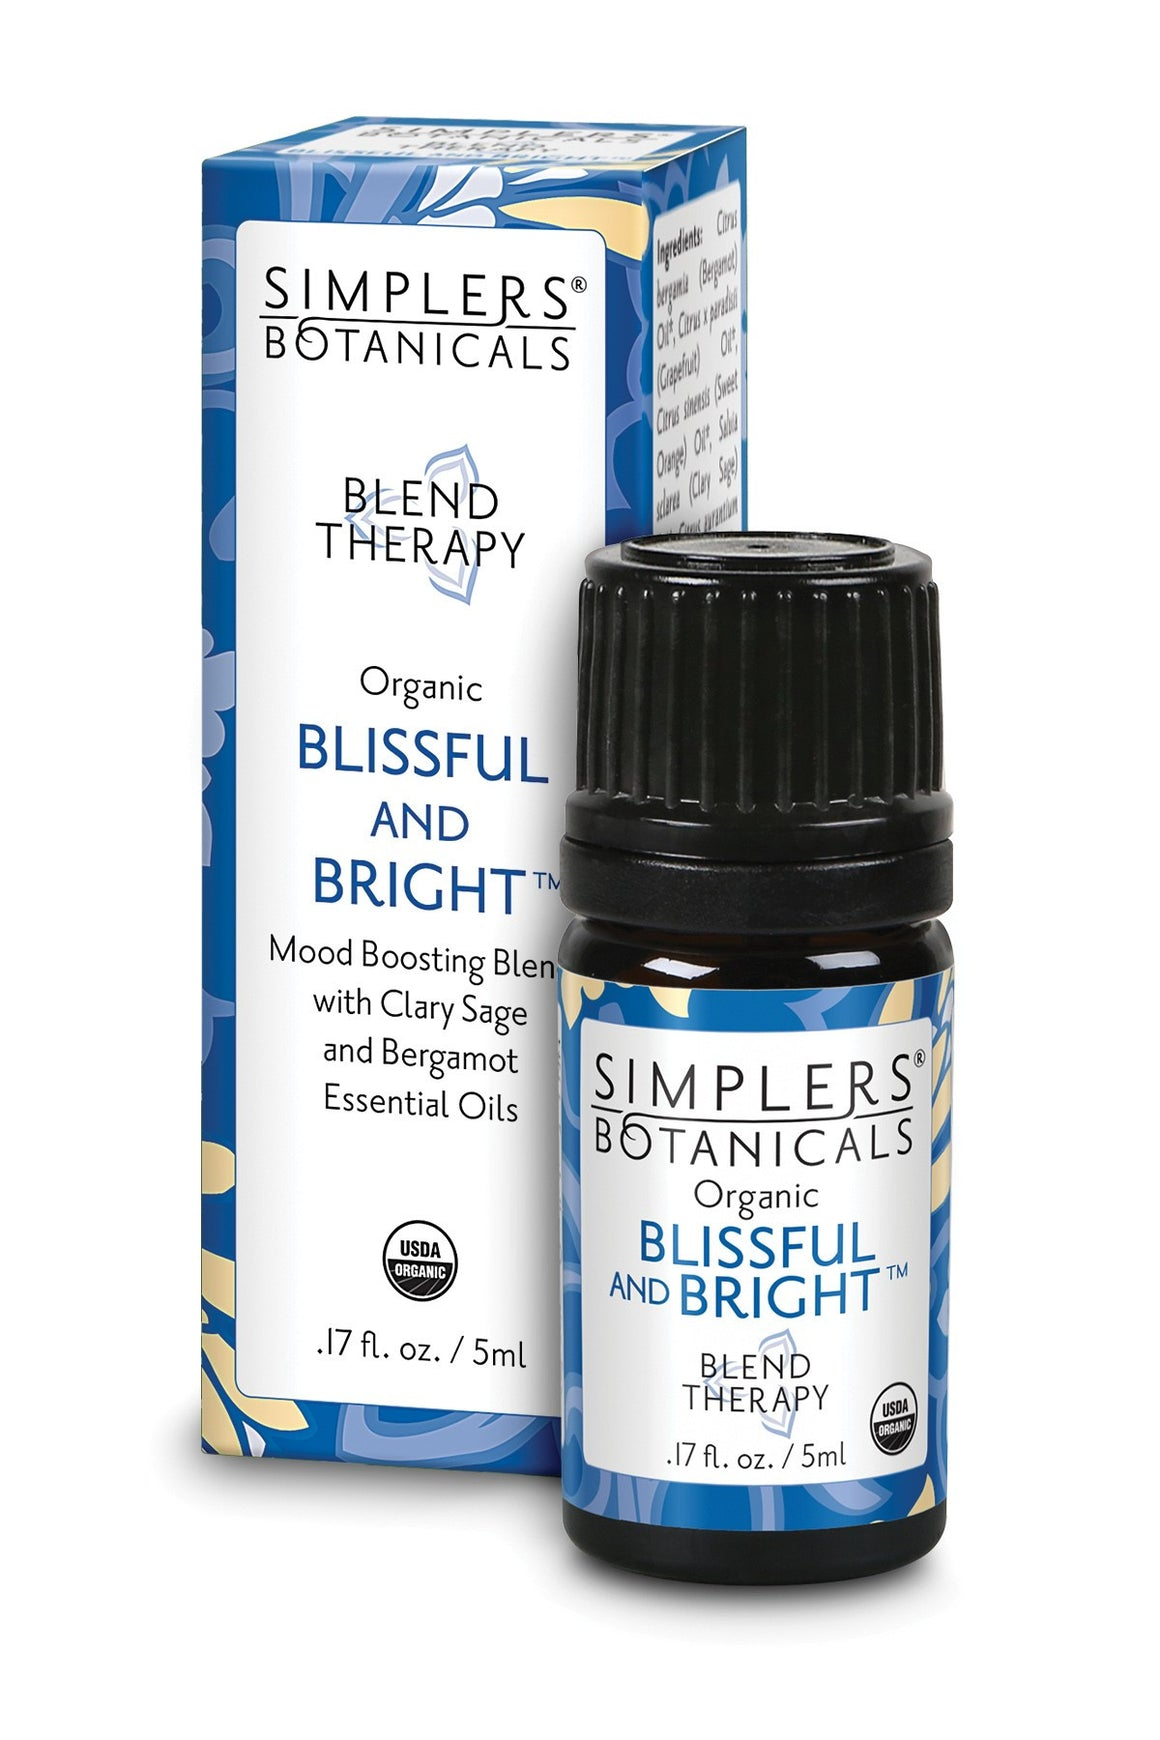 Simpler Botanicals Blissful and Bright